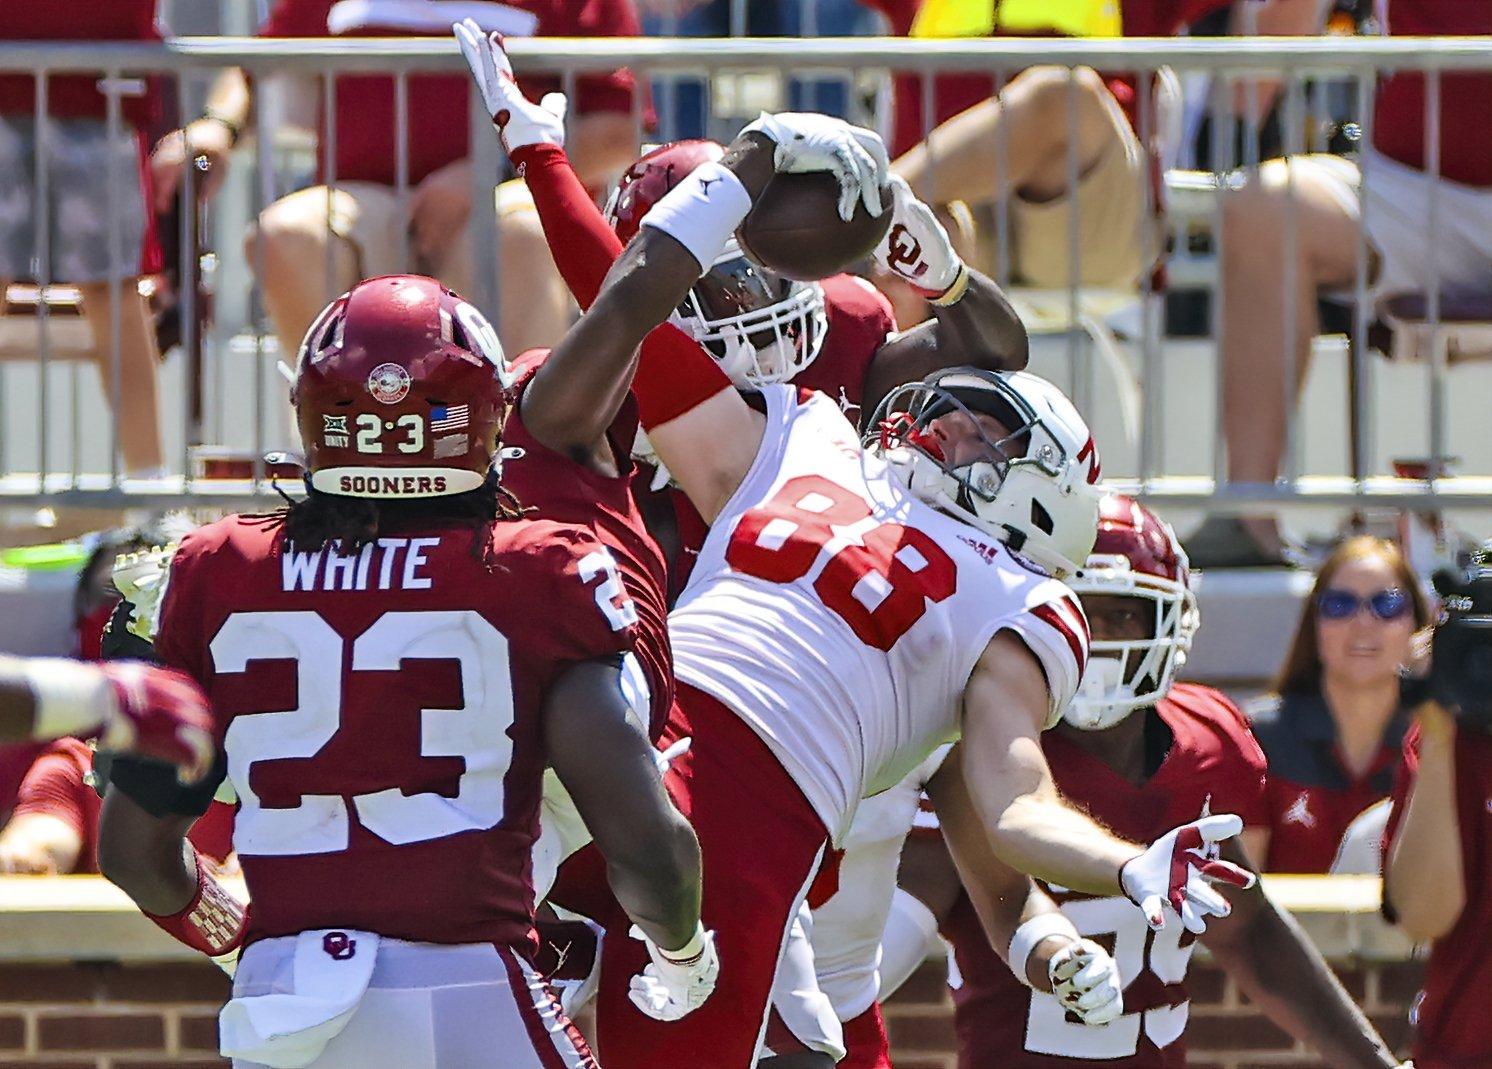 Oklahoma Sooners cornerback D.J. Graham (middle) makes an interception in front of Nebraska Cornhuskers wide receiver Levi Falck (88) during the fourth quarter at Gaylord Family-Oklahoma Memorial Stadium, Norman, Oklahoma, Sept. 18, 2021. (Kevin Jairaj-USA TODAY Sports via REUTERS)